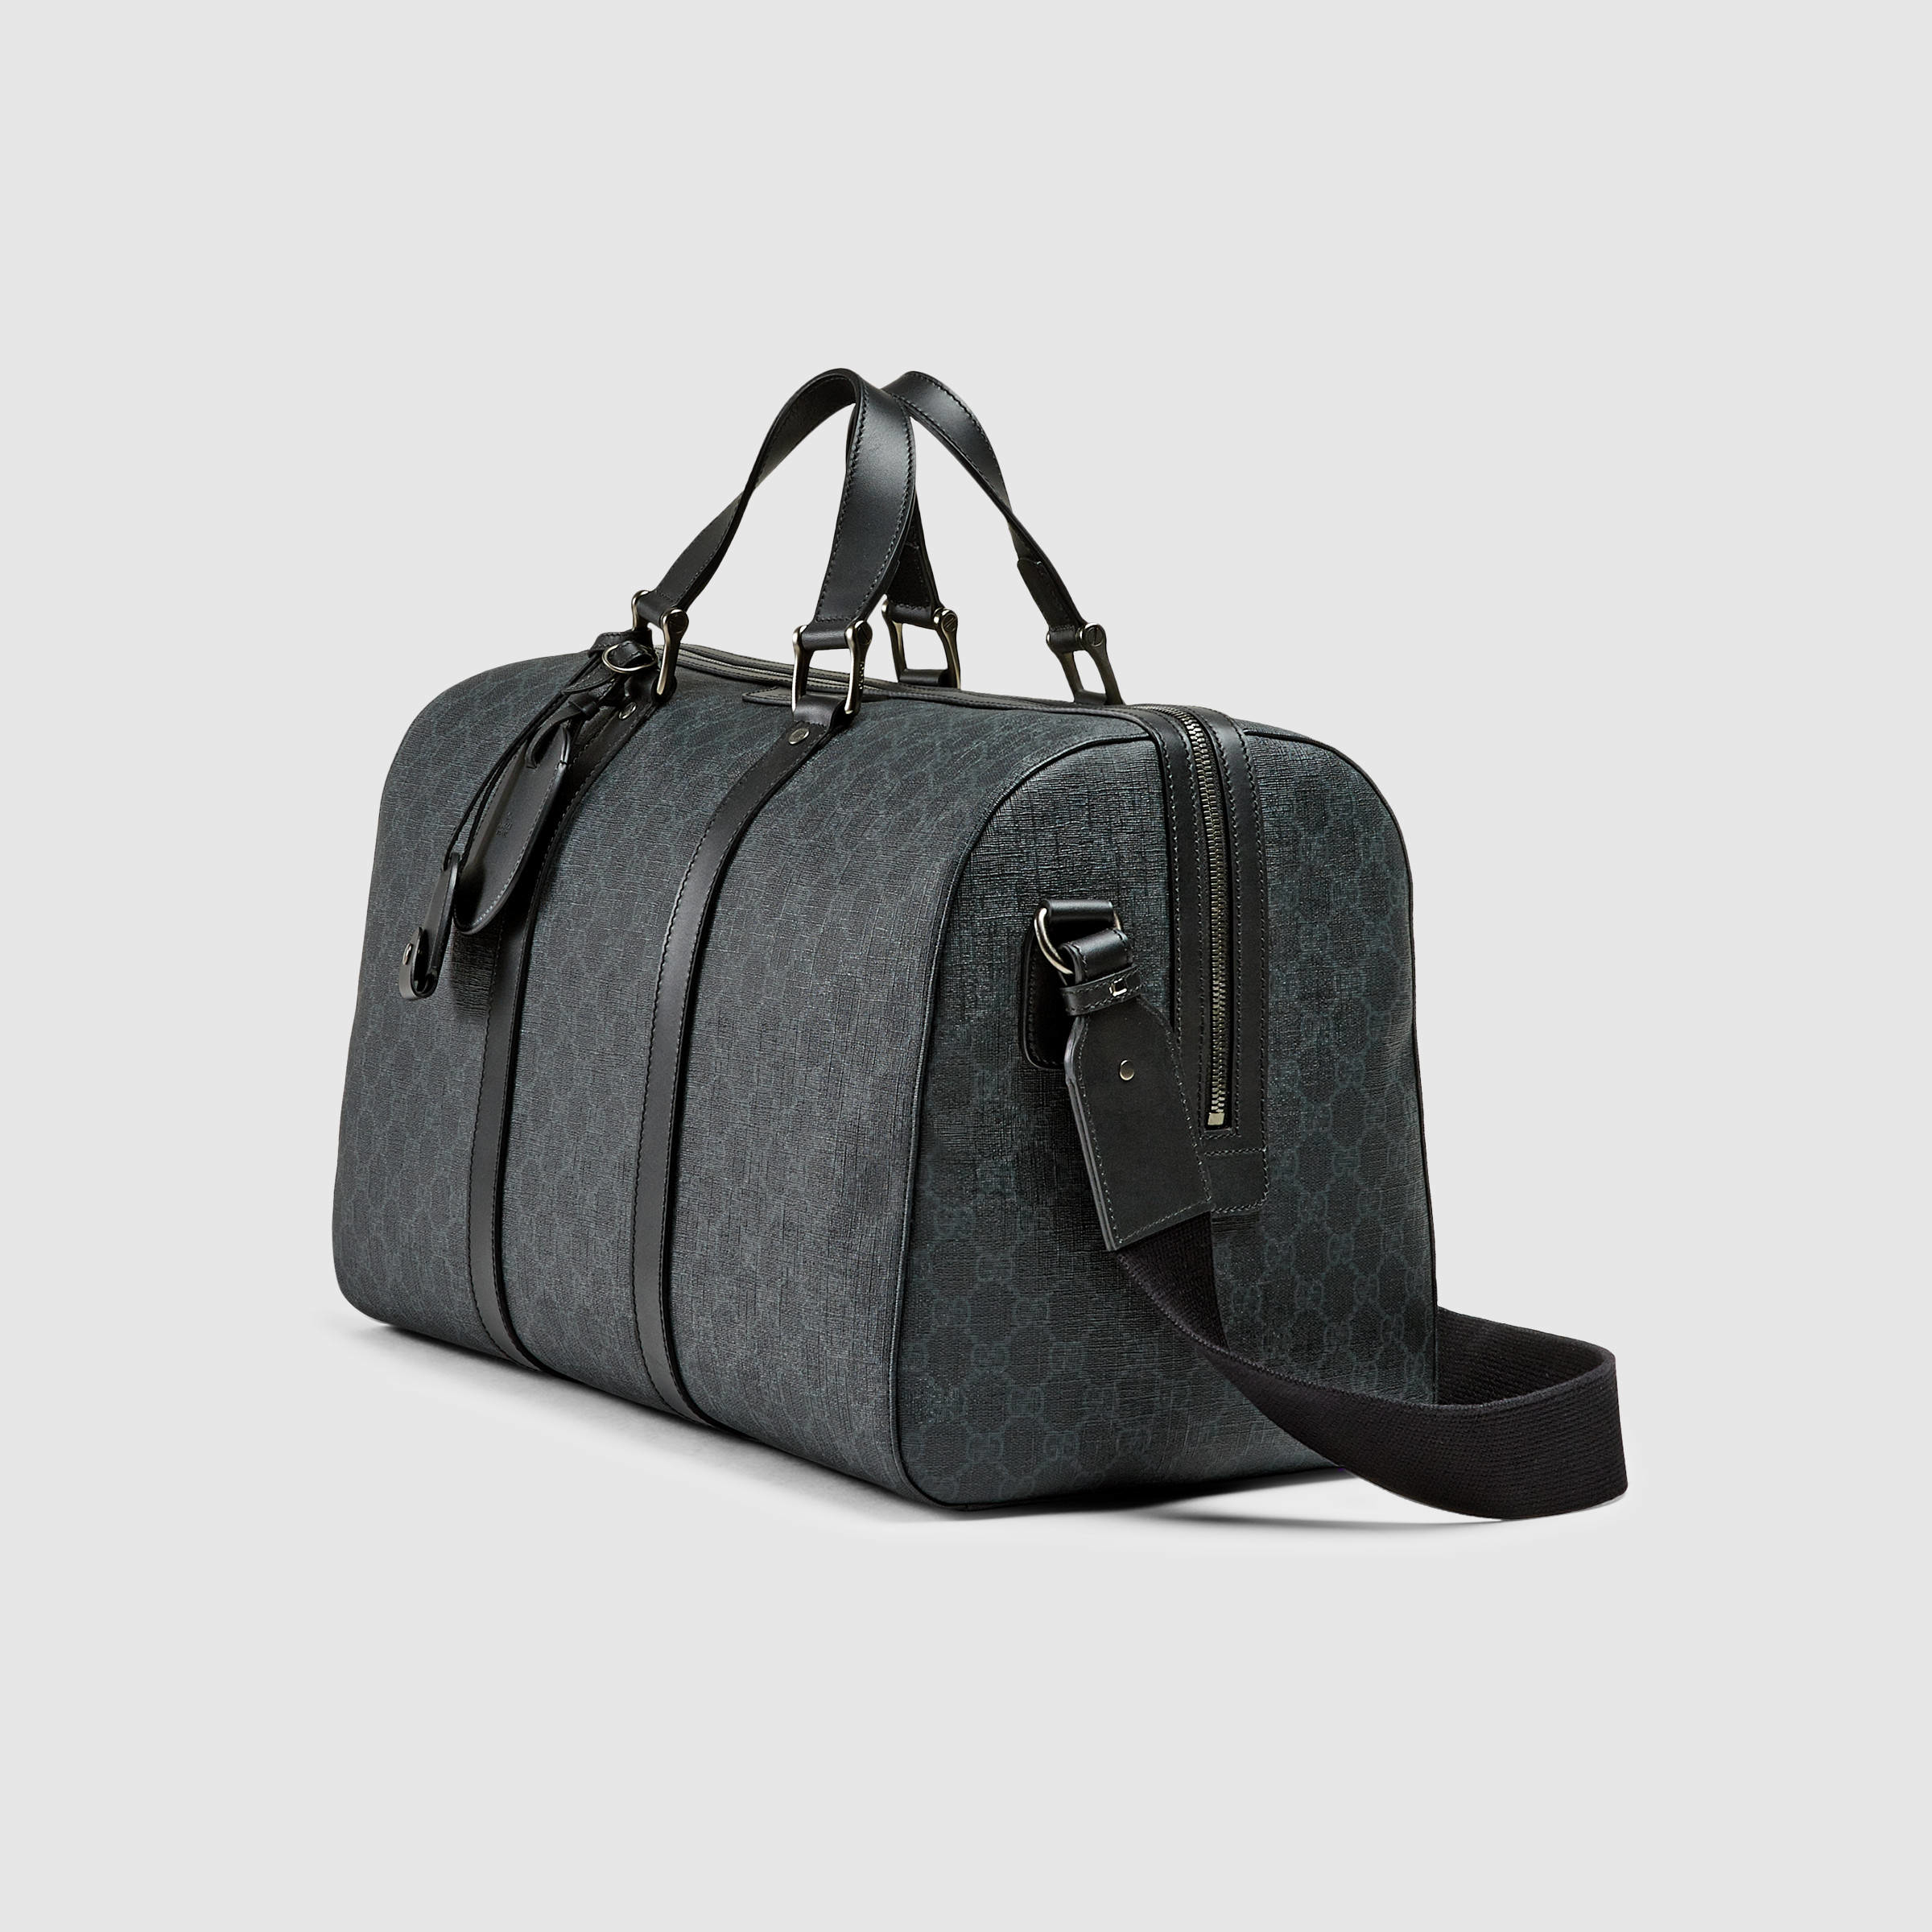 39a7c8364c7 Lyst - Gucci Gg Supreme Canvas Carry-on Duffle Bag in Black for Men